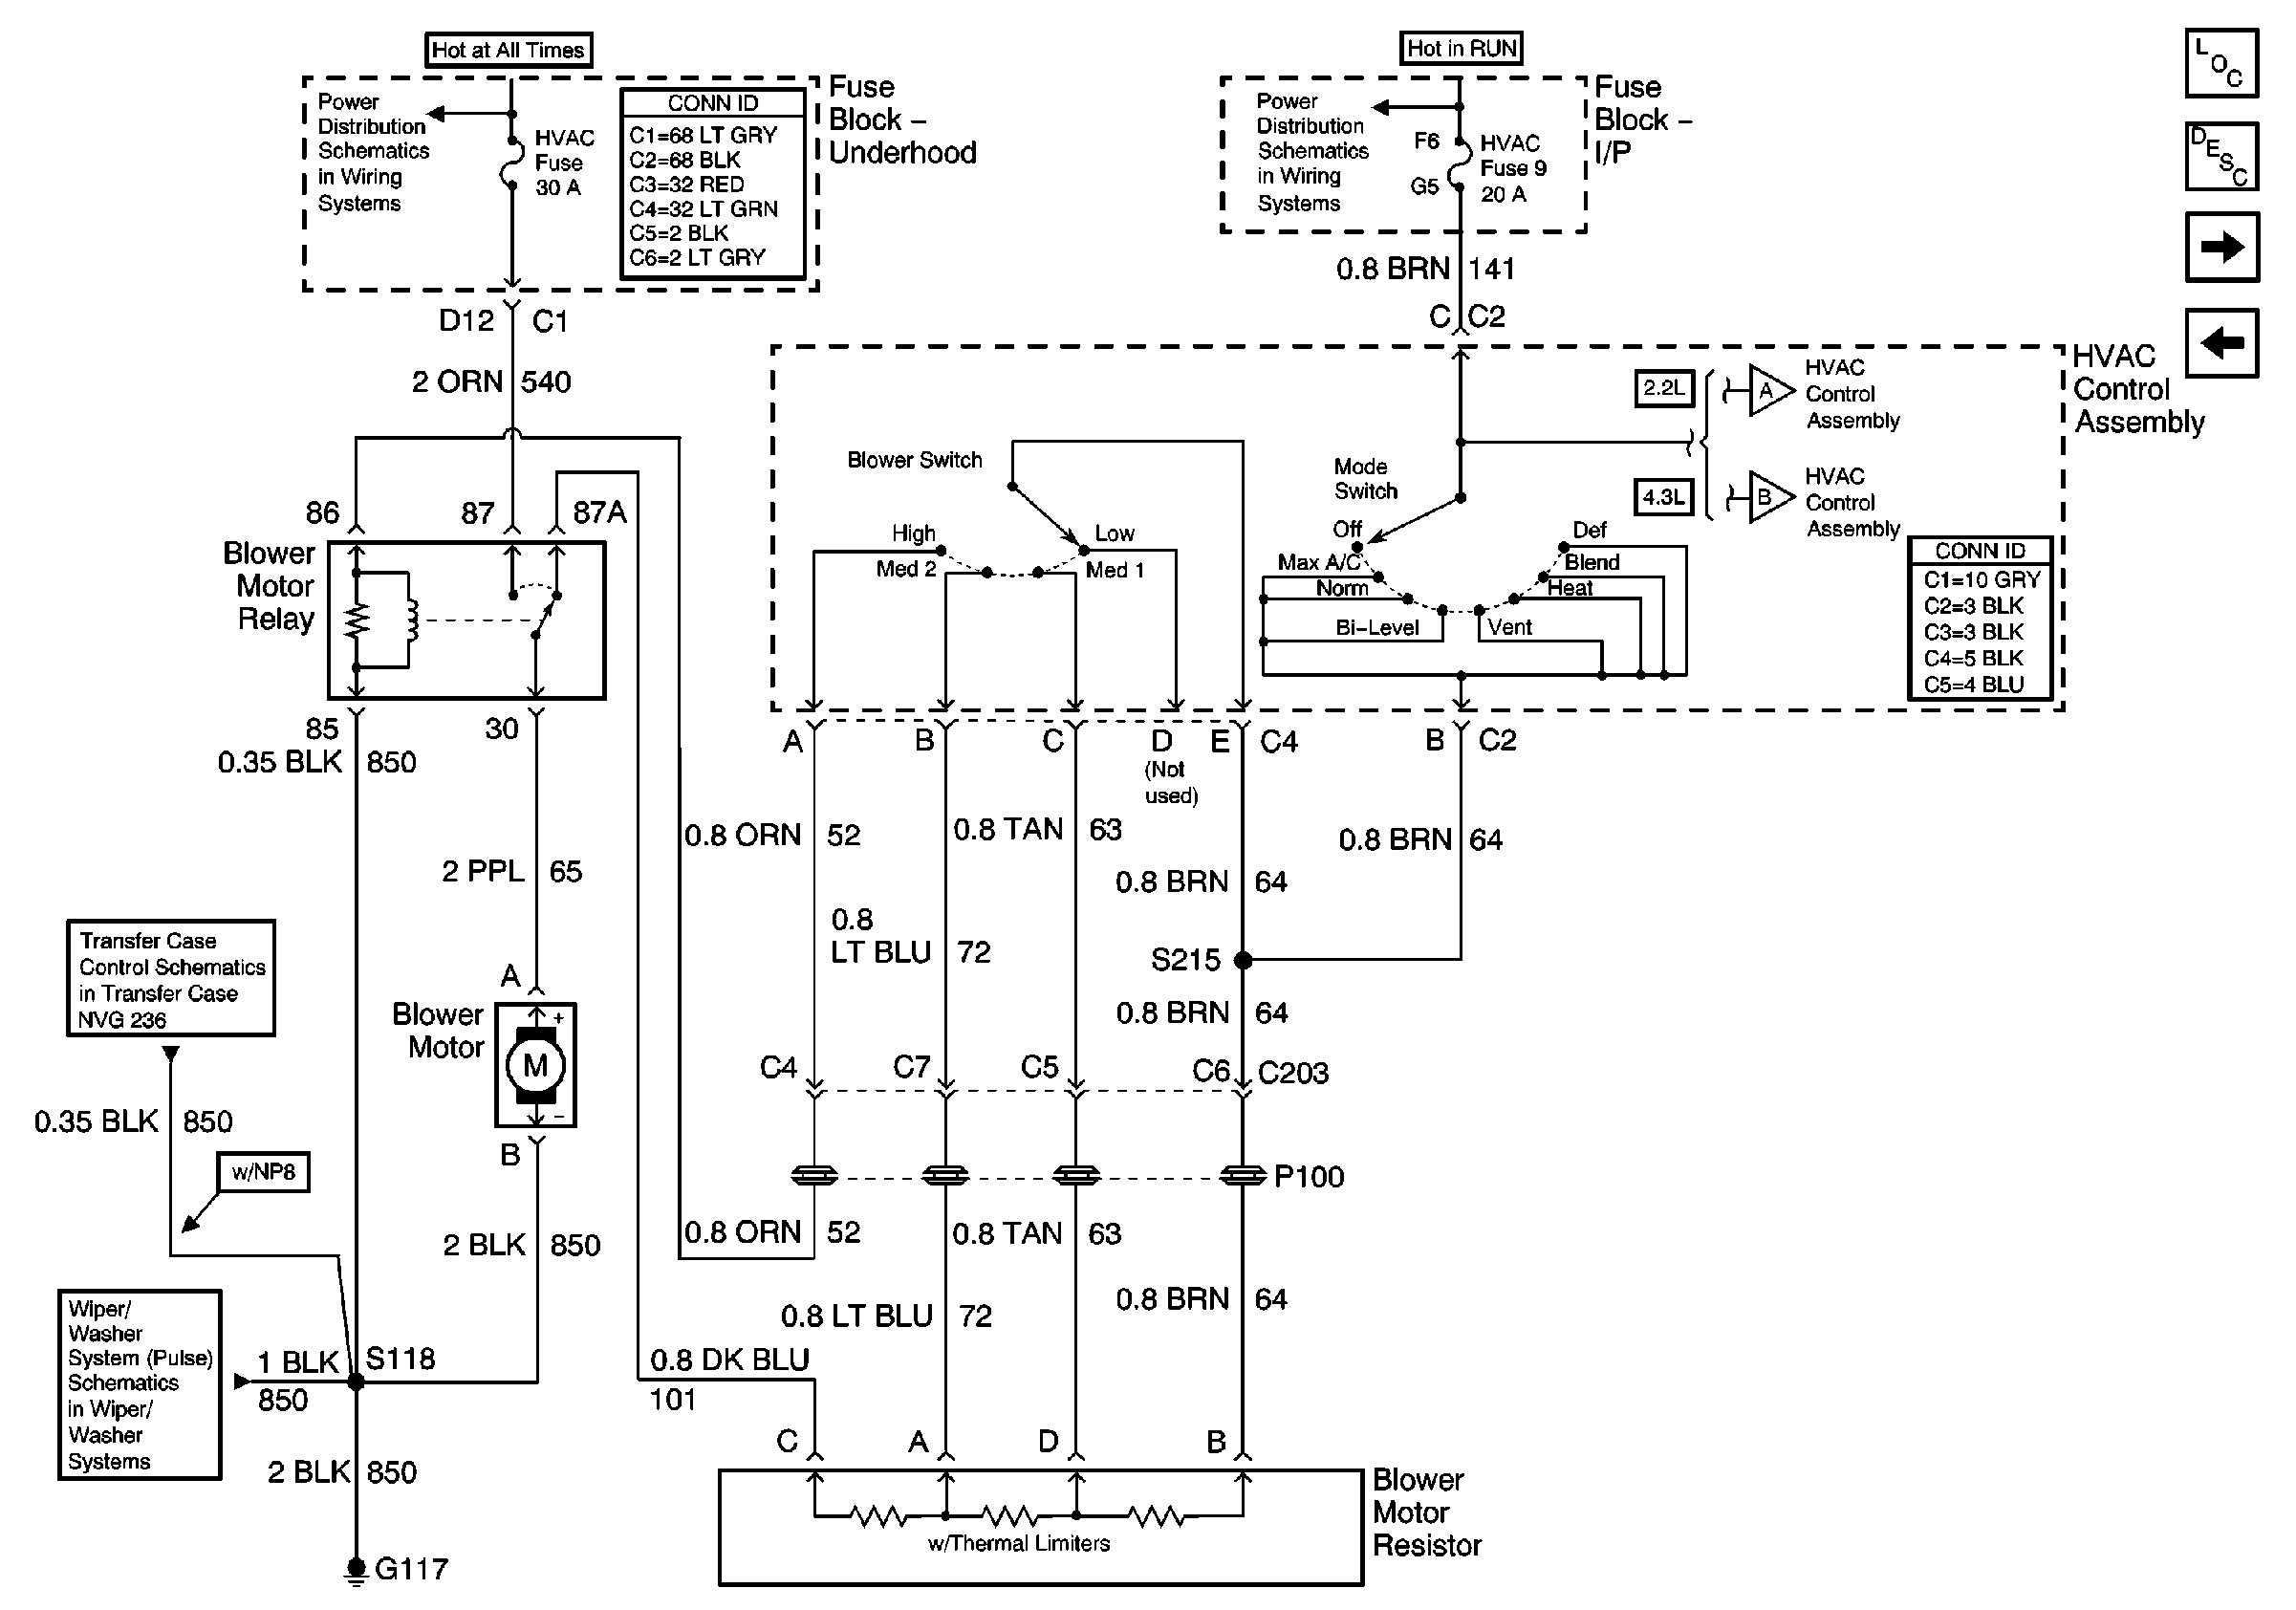 1994 S10 Wiring Diagram Pdf Expert V8 Swap Inspirational Image 1983 Schematic Blower Motor